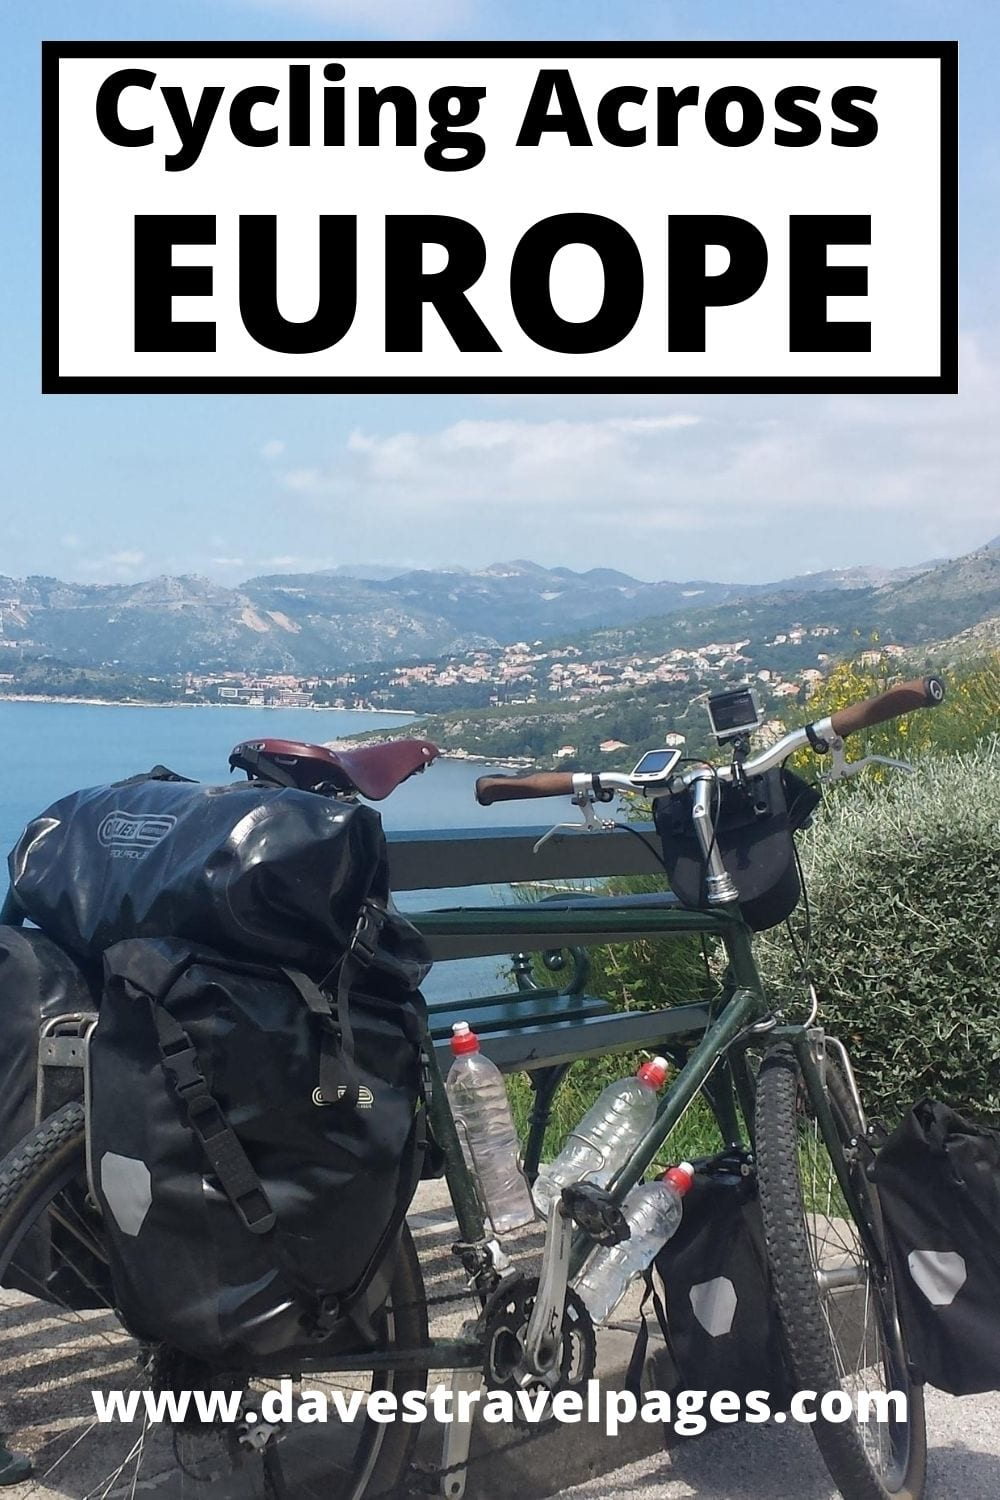 Bike Touring Across Europe: A summary of my latest bicycle tour, which involved cycling across Europe. Starting in Greece, I spent two and a half months riding through 11 European countries to my final destination in England. Interested in finding out what I got up to when cycling across Europe? Please read the full article for more!